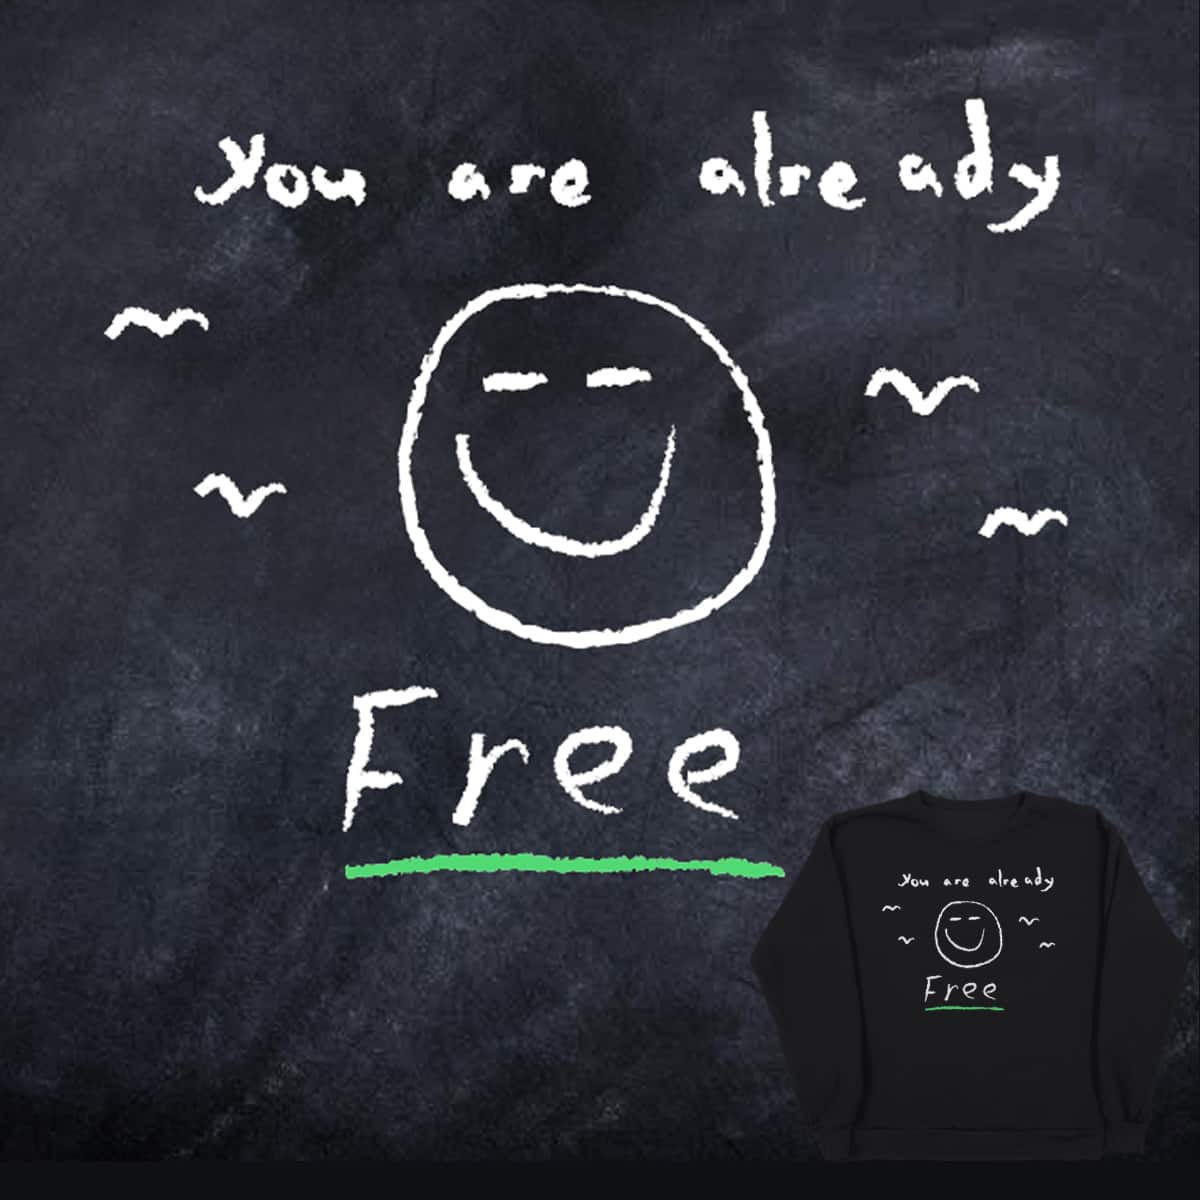 Already Free by ronemahone on Threadless